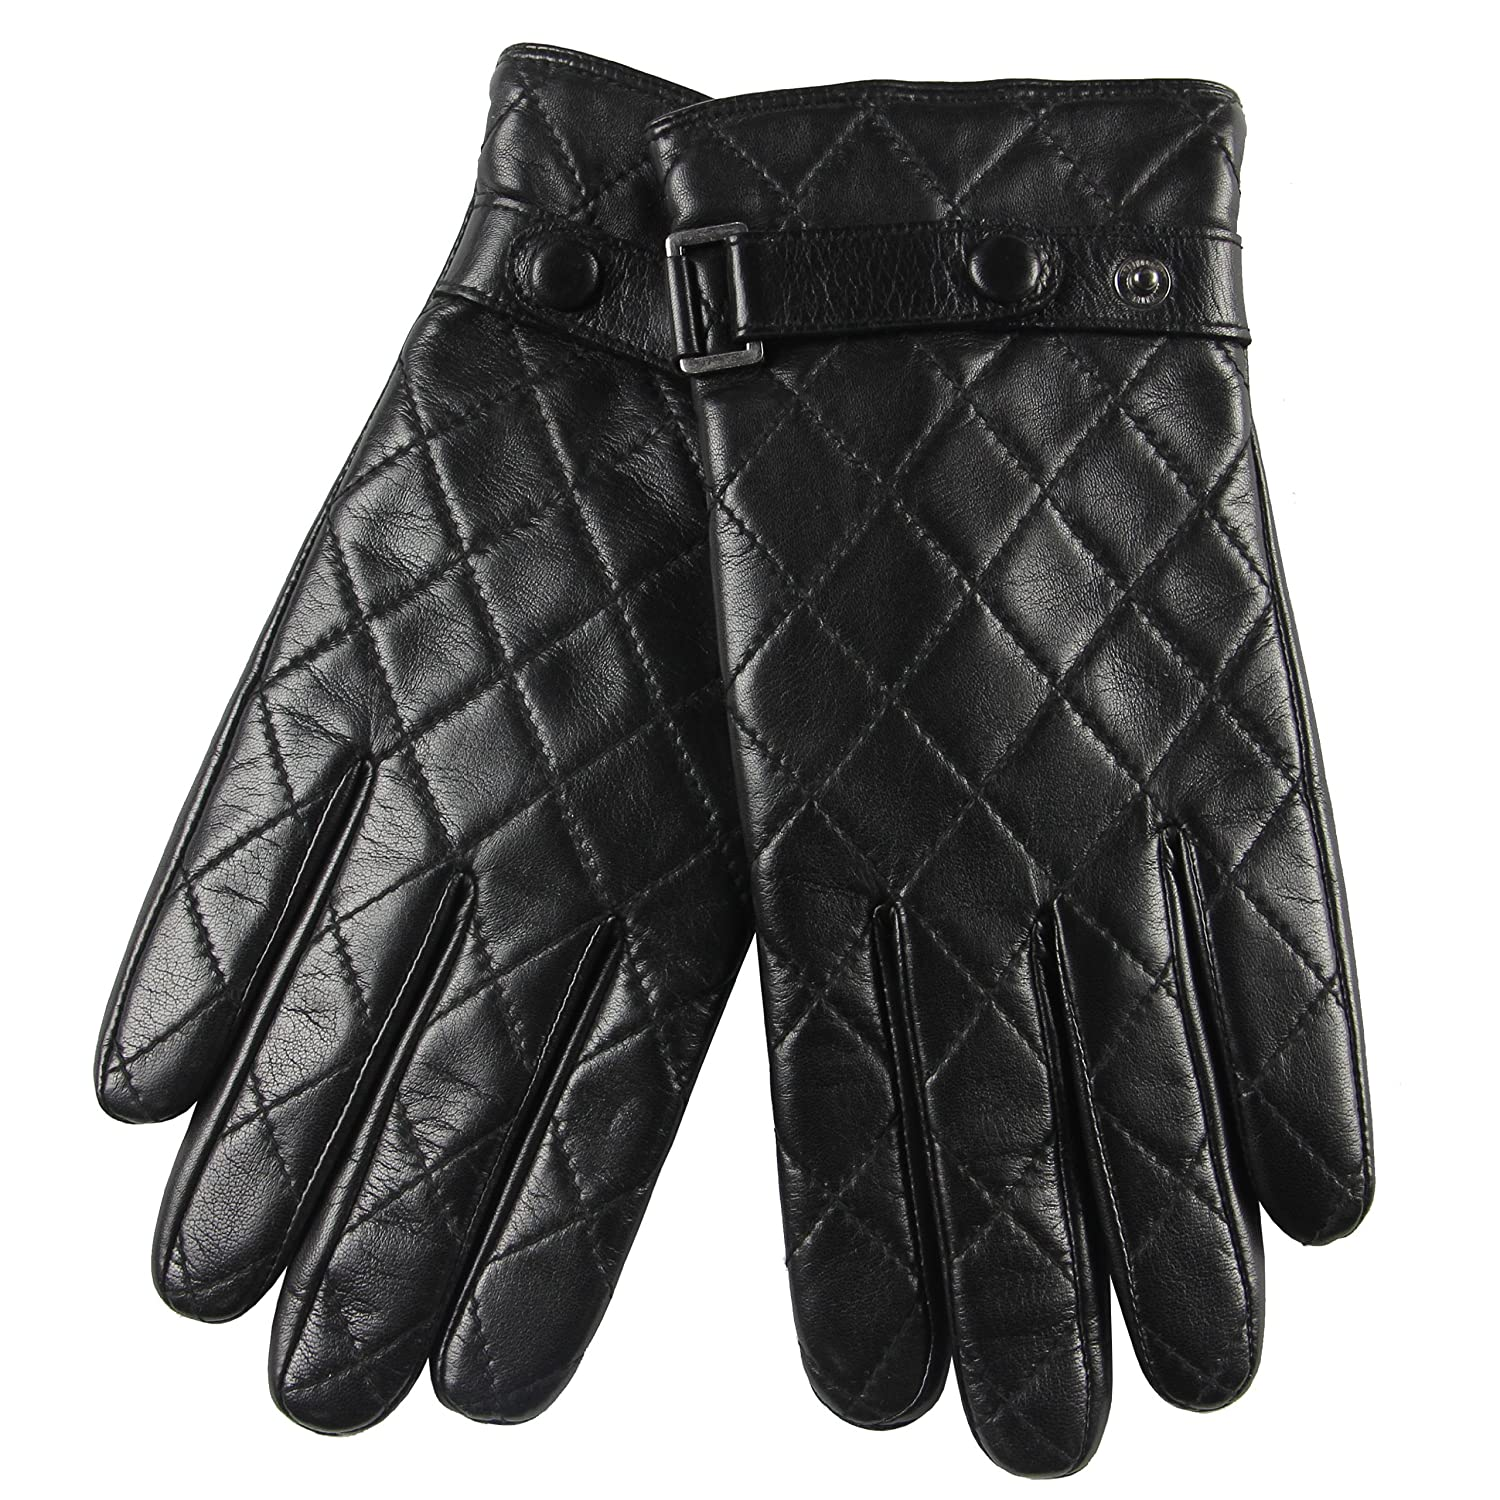 Mens gloves fashion - Warmen Fashion Men S Nappa Leather Gloves With Plaid Stitching Buckle Faster At Amazon Men S Clothing Store Cold Weather Gloves